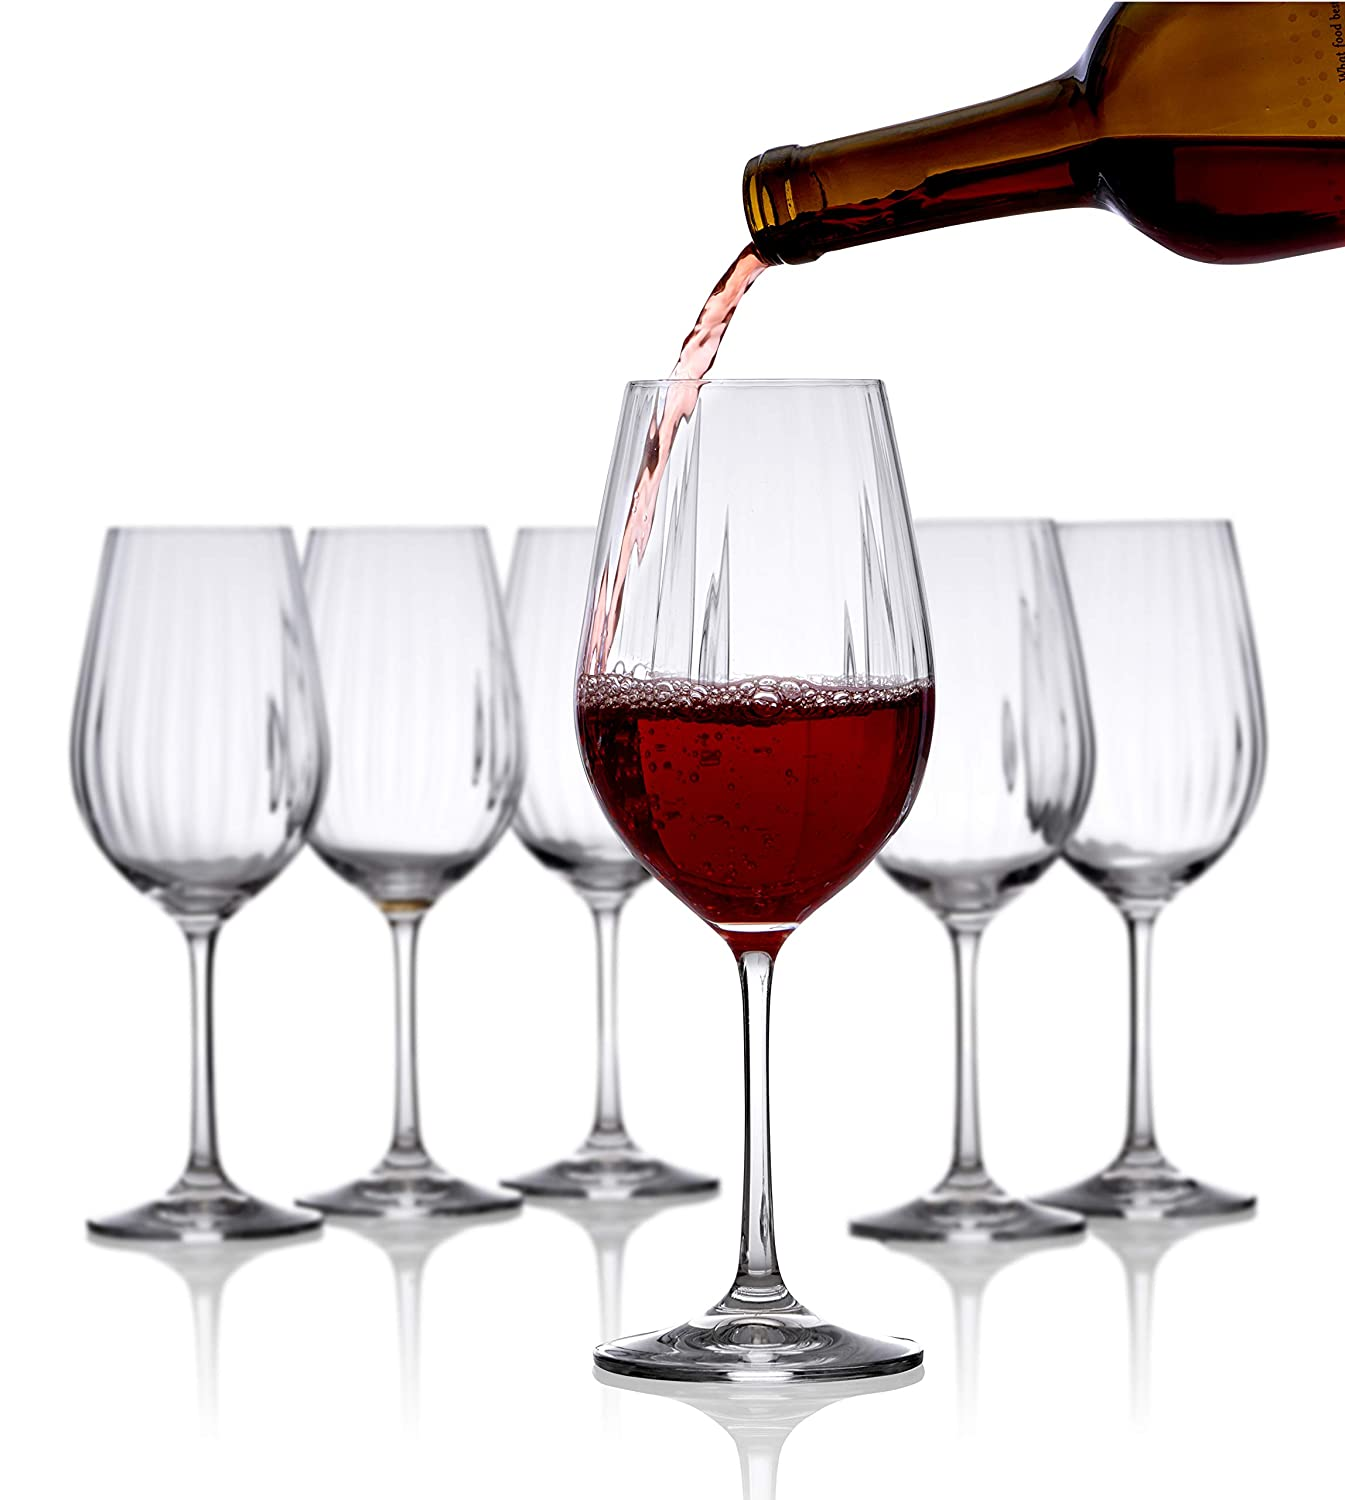 87df0a70cdd Wine Glasses Set of 6 - Pure Crystal Red Wine Glasses - Waterfall Edition -  16 Ounces